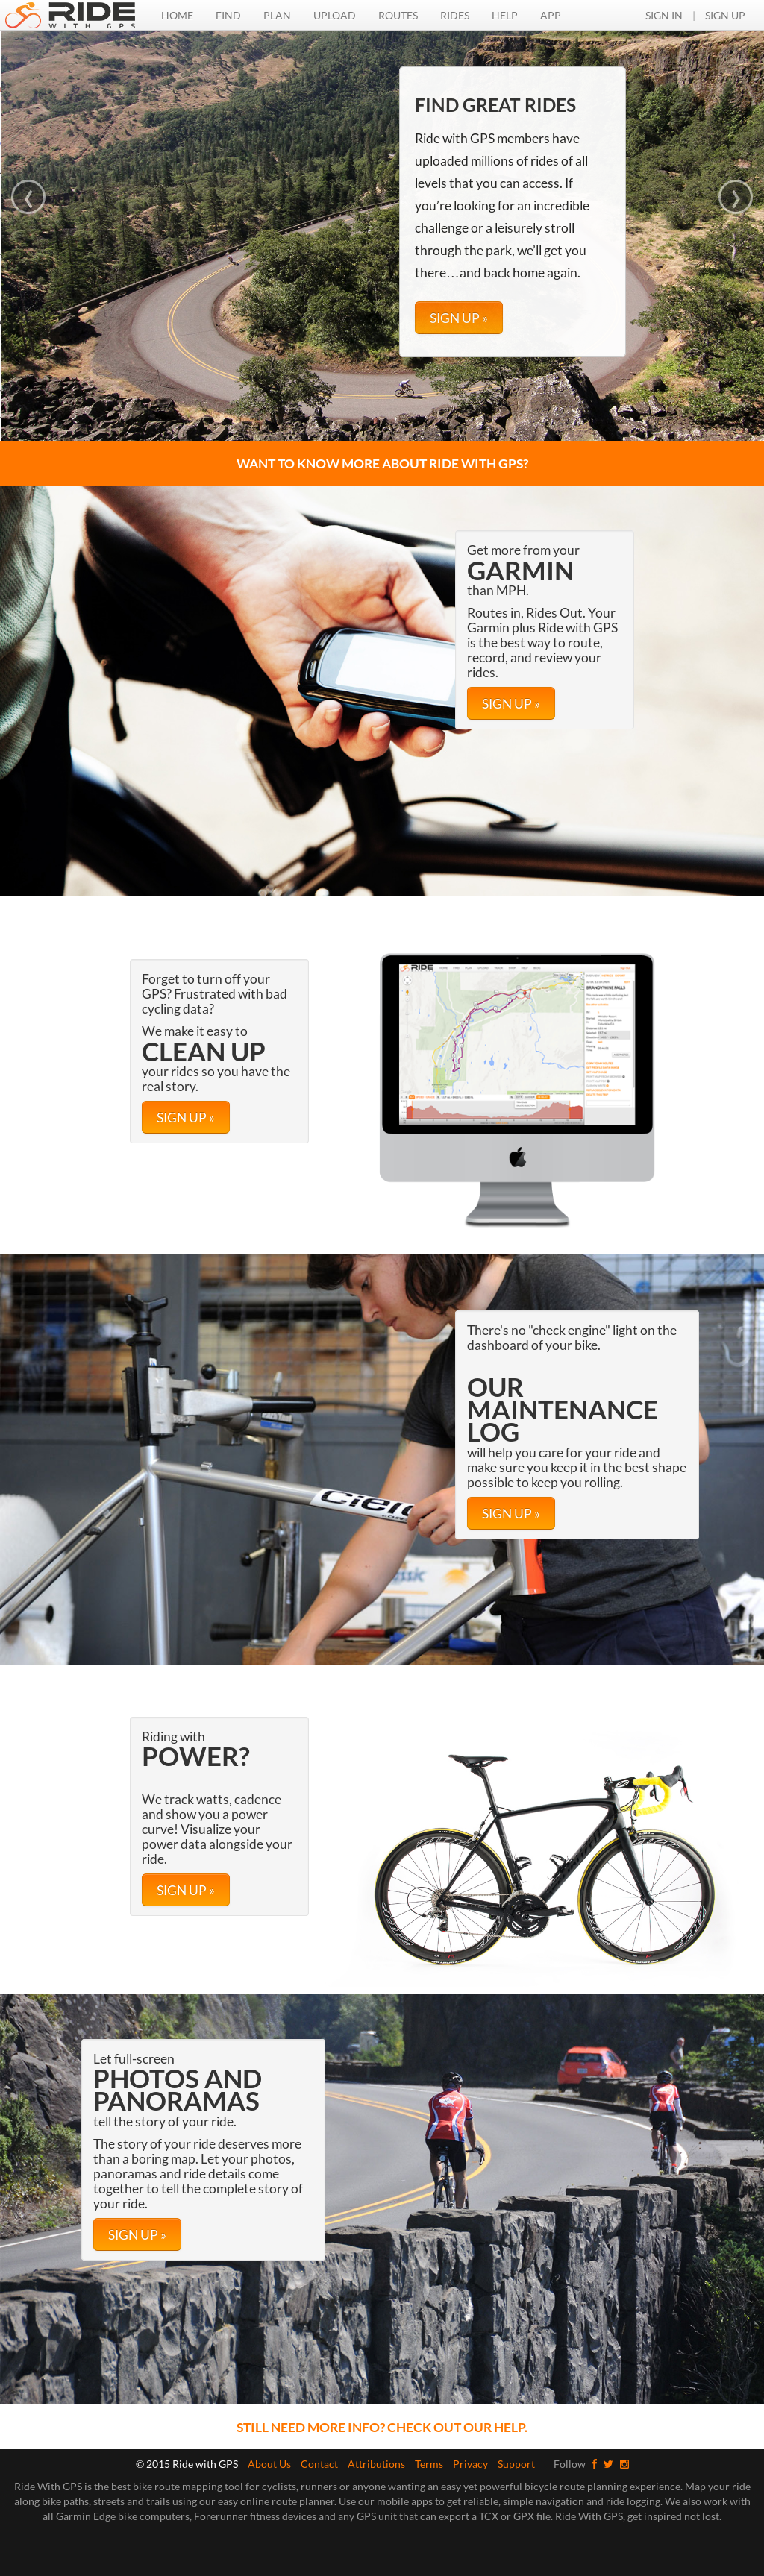 Ride With Gps Competitors, Revenue and Employees - Owler